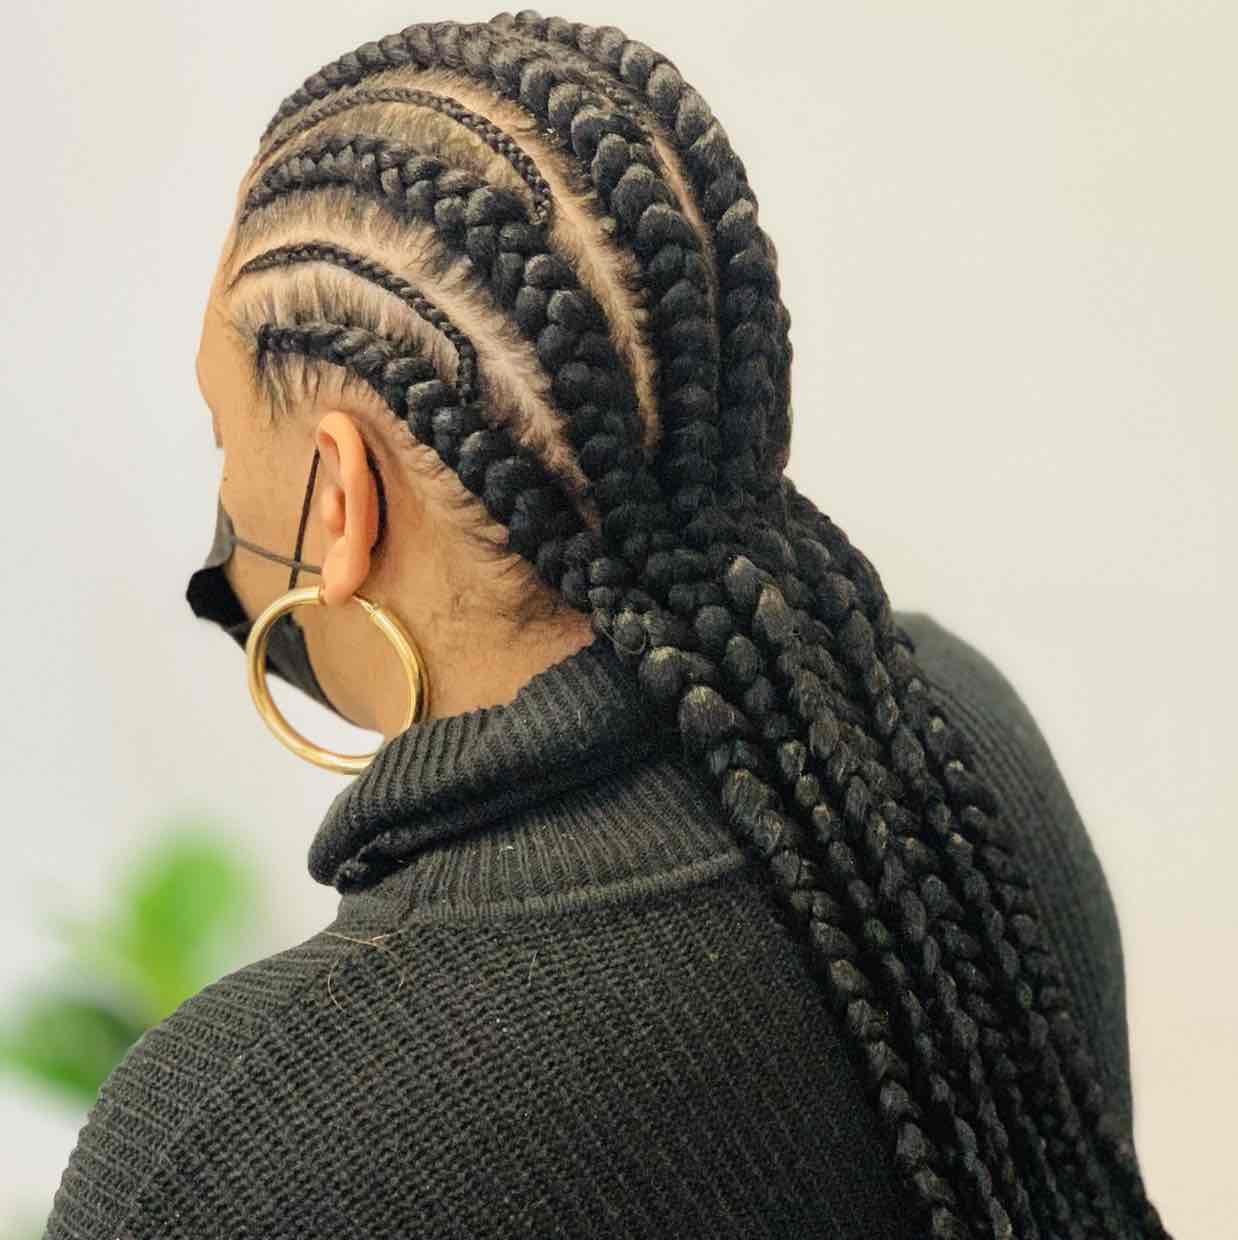 salon de coiffure afro tresse tresses box braids crochet braids vanilles tissages paris 75 77 78 91 92 93 94 95 VFQHBMCN